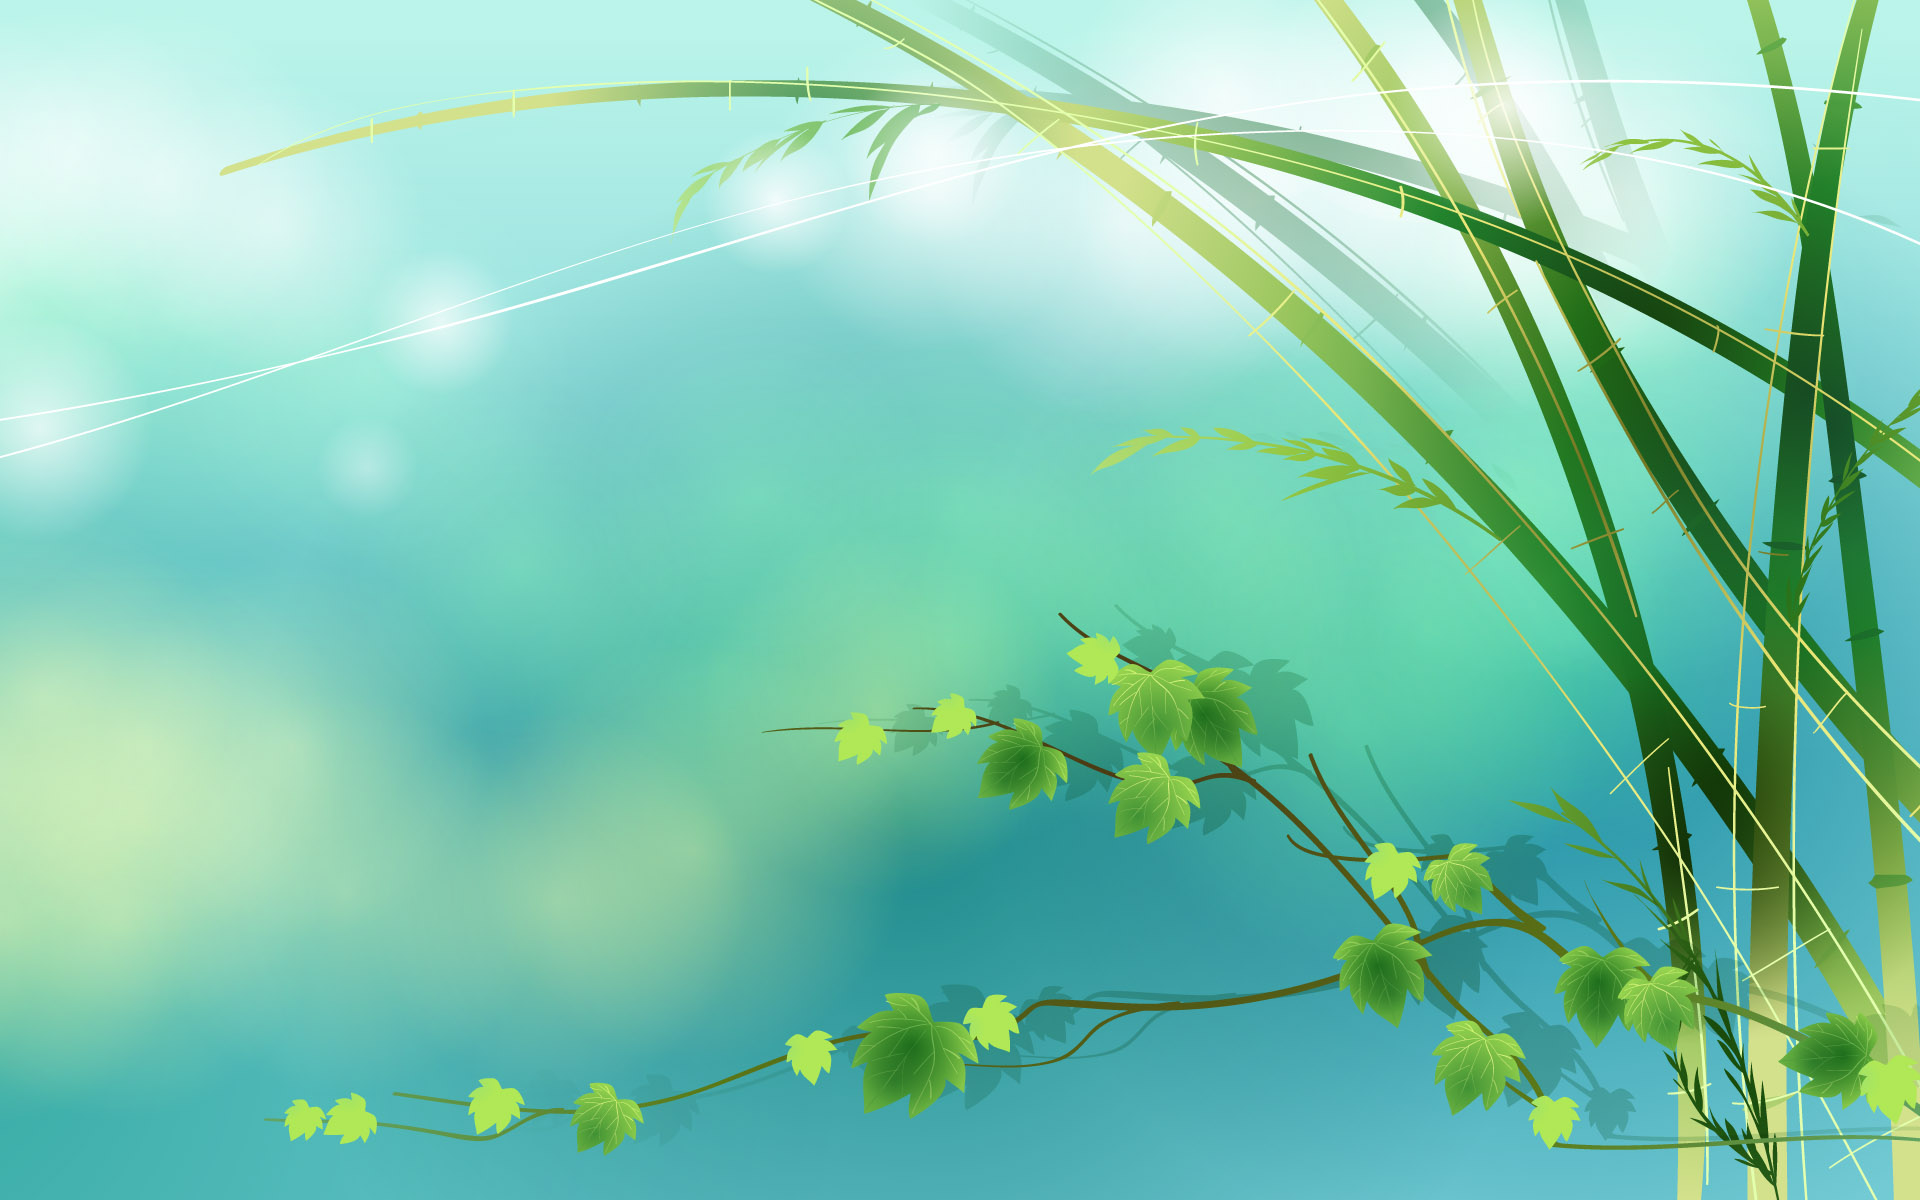 vector-beach-spring-wallpaper-scenery-backgrounds-green-wallpapers-array-wallwuzz-hd-wallpaper-7513.jpg